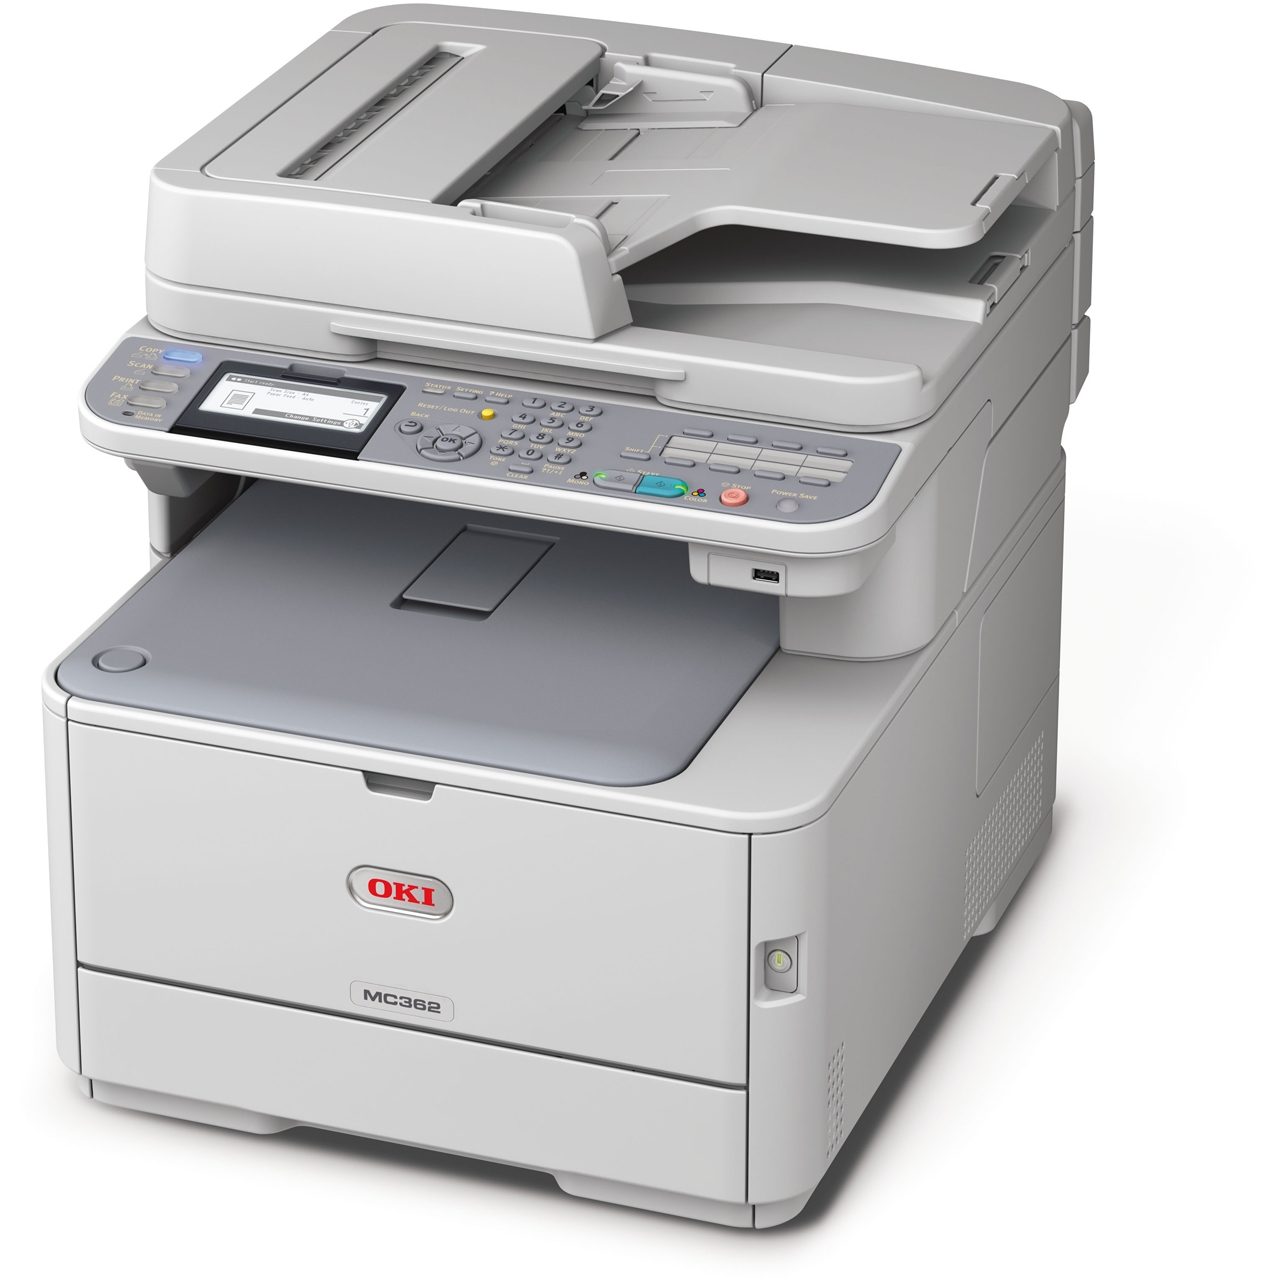 OKI-MC362dn-Duplex-Network-A4-Colour-Laser-Printer